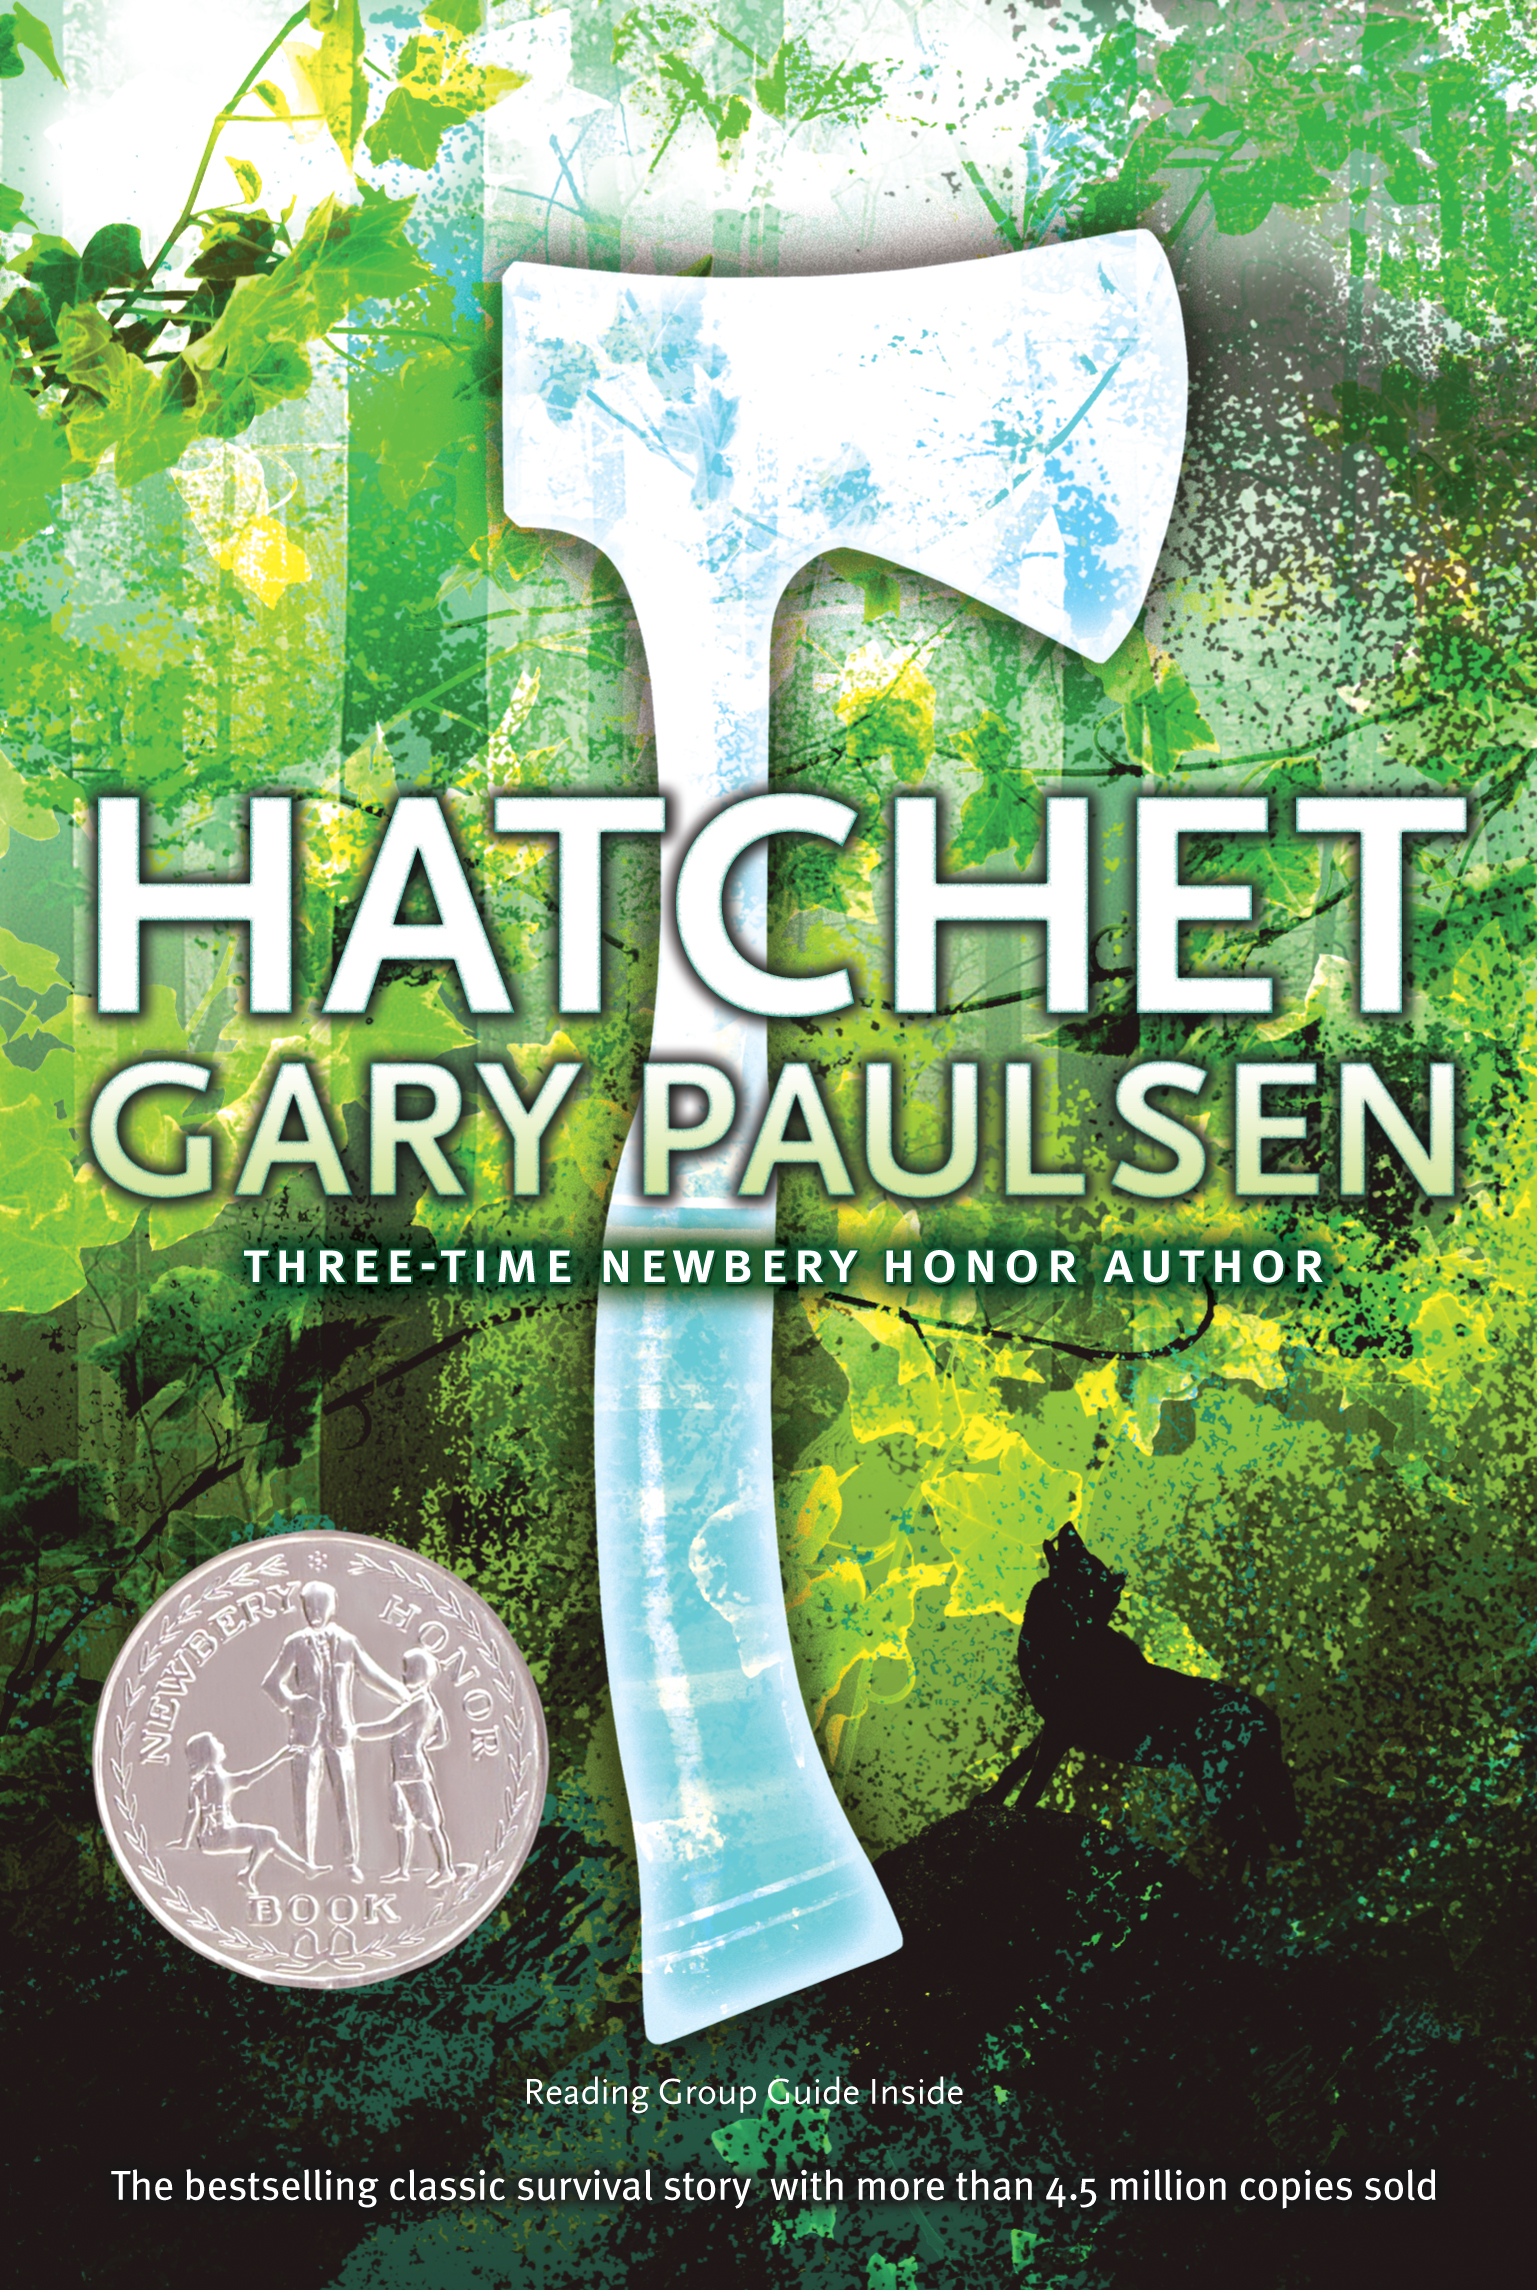 an analysis of the book hatchet written by gary paulsen This study guide consists of approximately 24 pages of chapter summaries, quotes, character analysis, themes, and more - everything you need to sharpen your knowledge of hatchet hatchet was written by gary paulsen in this novel, thirteen year old brian is flying on a bush plane when the pilot .